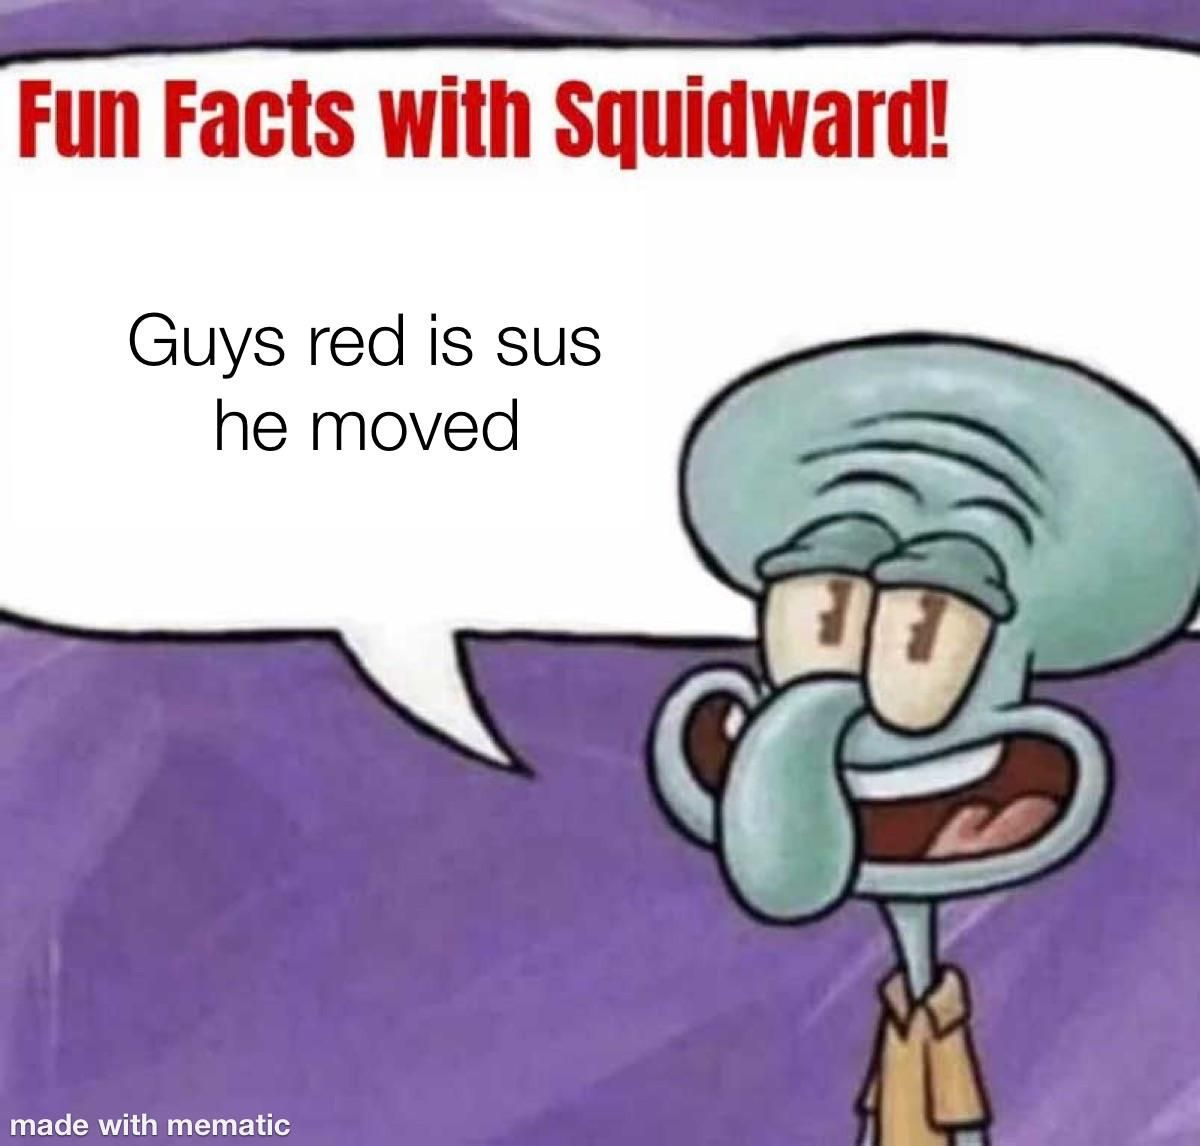 Yea Bro It S Red He S Super Sus Memes Quotes Fun Facts Edgy Memes